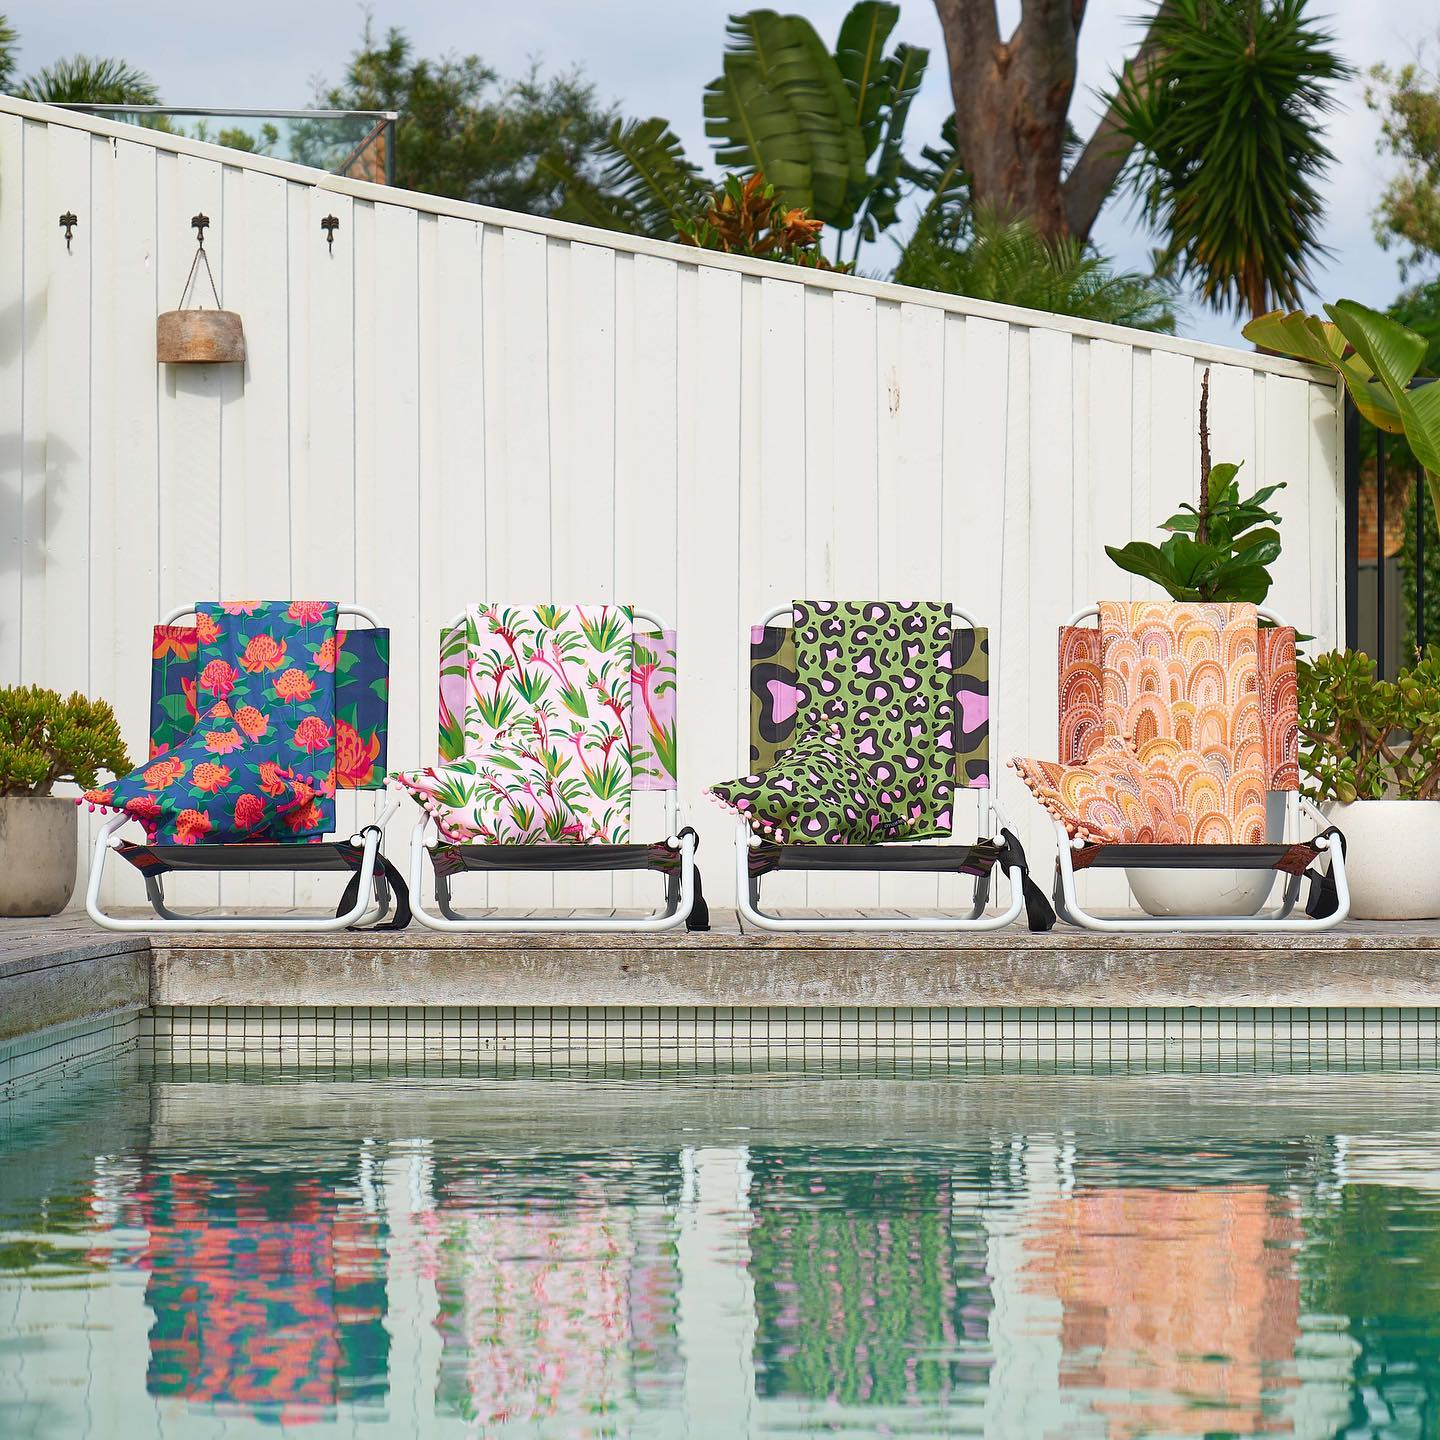 With summer approaching, it's all about the beach and having picnics. Our Annabel Trends collection will set you up with all you need. From sand free beach towels, inflatable beach pillows, beach cooler bags to beach rugs, lightweight chairs and jumbo beach bags. . . #beachvibes #picnics #picnicsetup #beachchairs #beachtowels #beachbags #beachrugs #annabeltrends